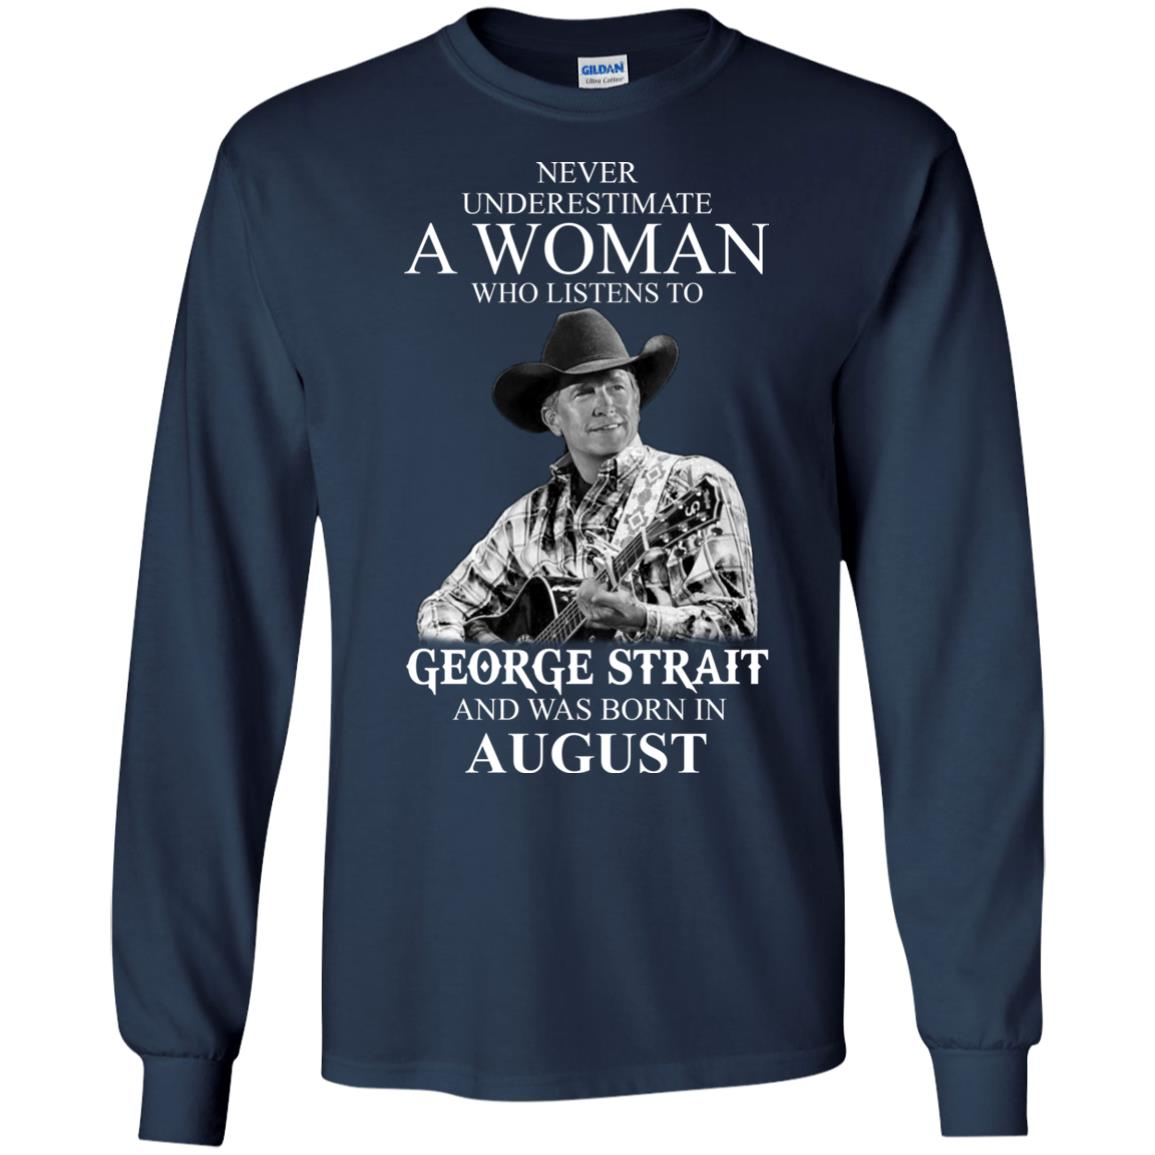 image 389 - Never Underestimate A Woman Who Listens To George Strait And Was Born In August shirt